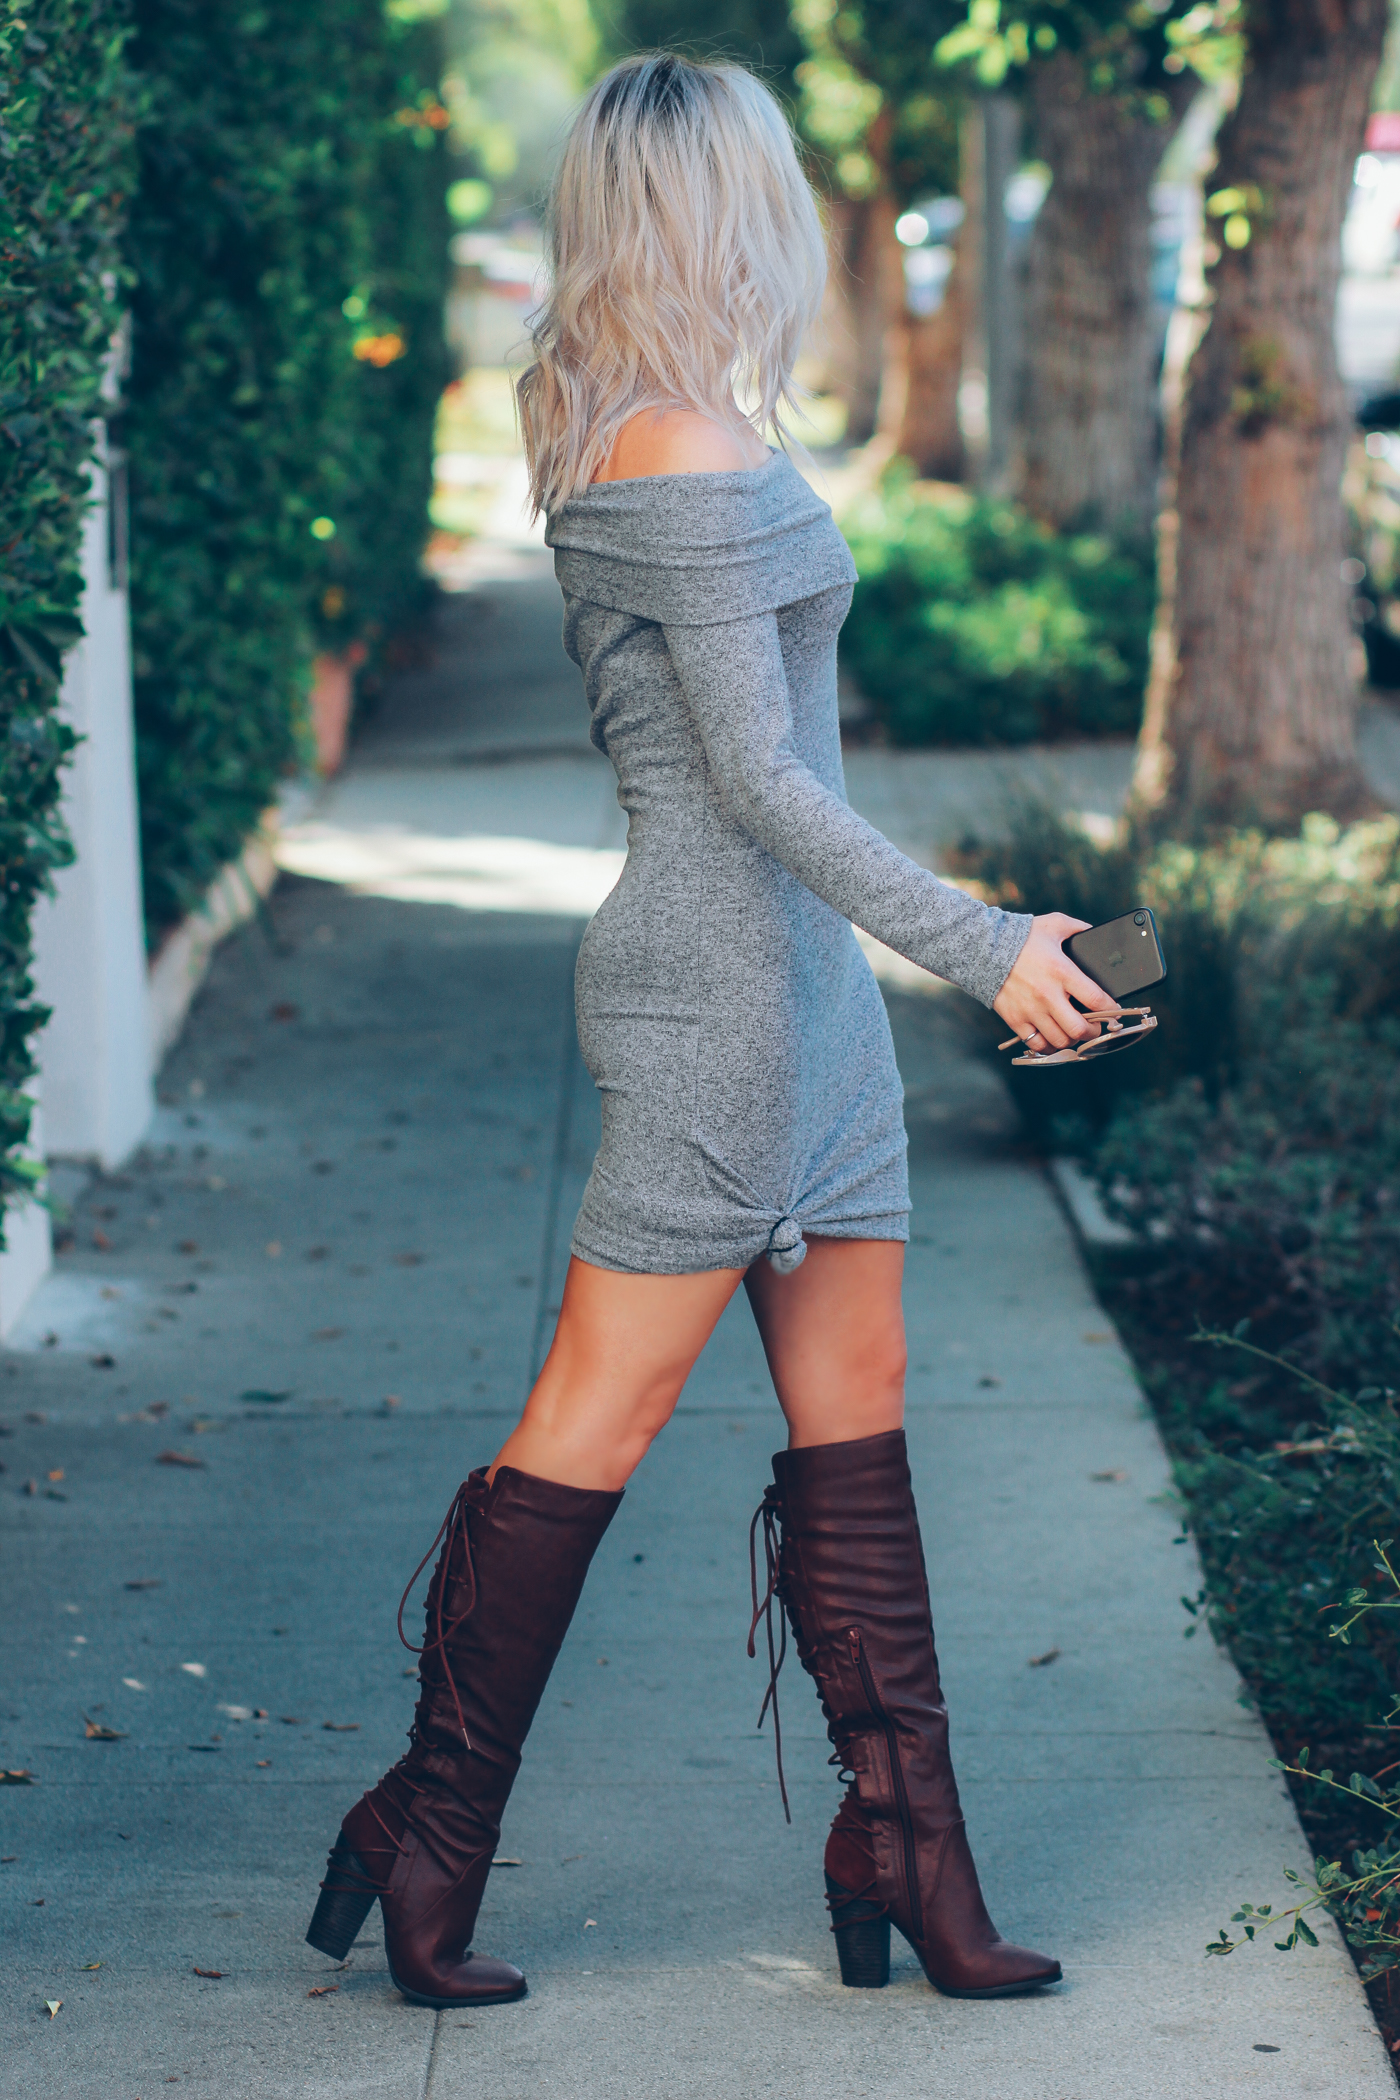 Blondie in the City   Off the Shoulder Sweater Dress @justfabonline   Burgundy boots for Fall @shoedazzle